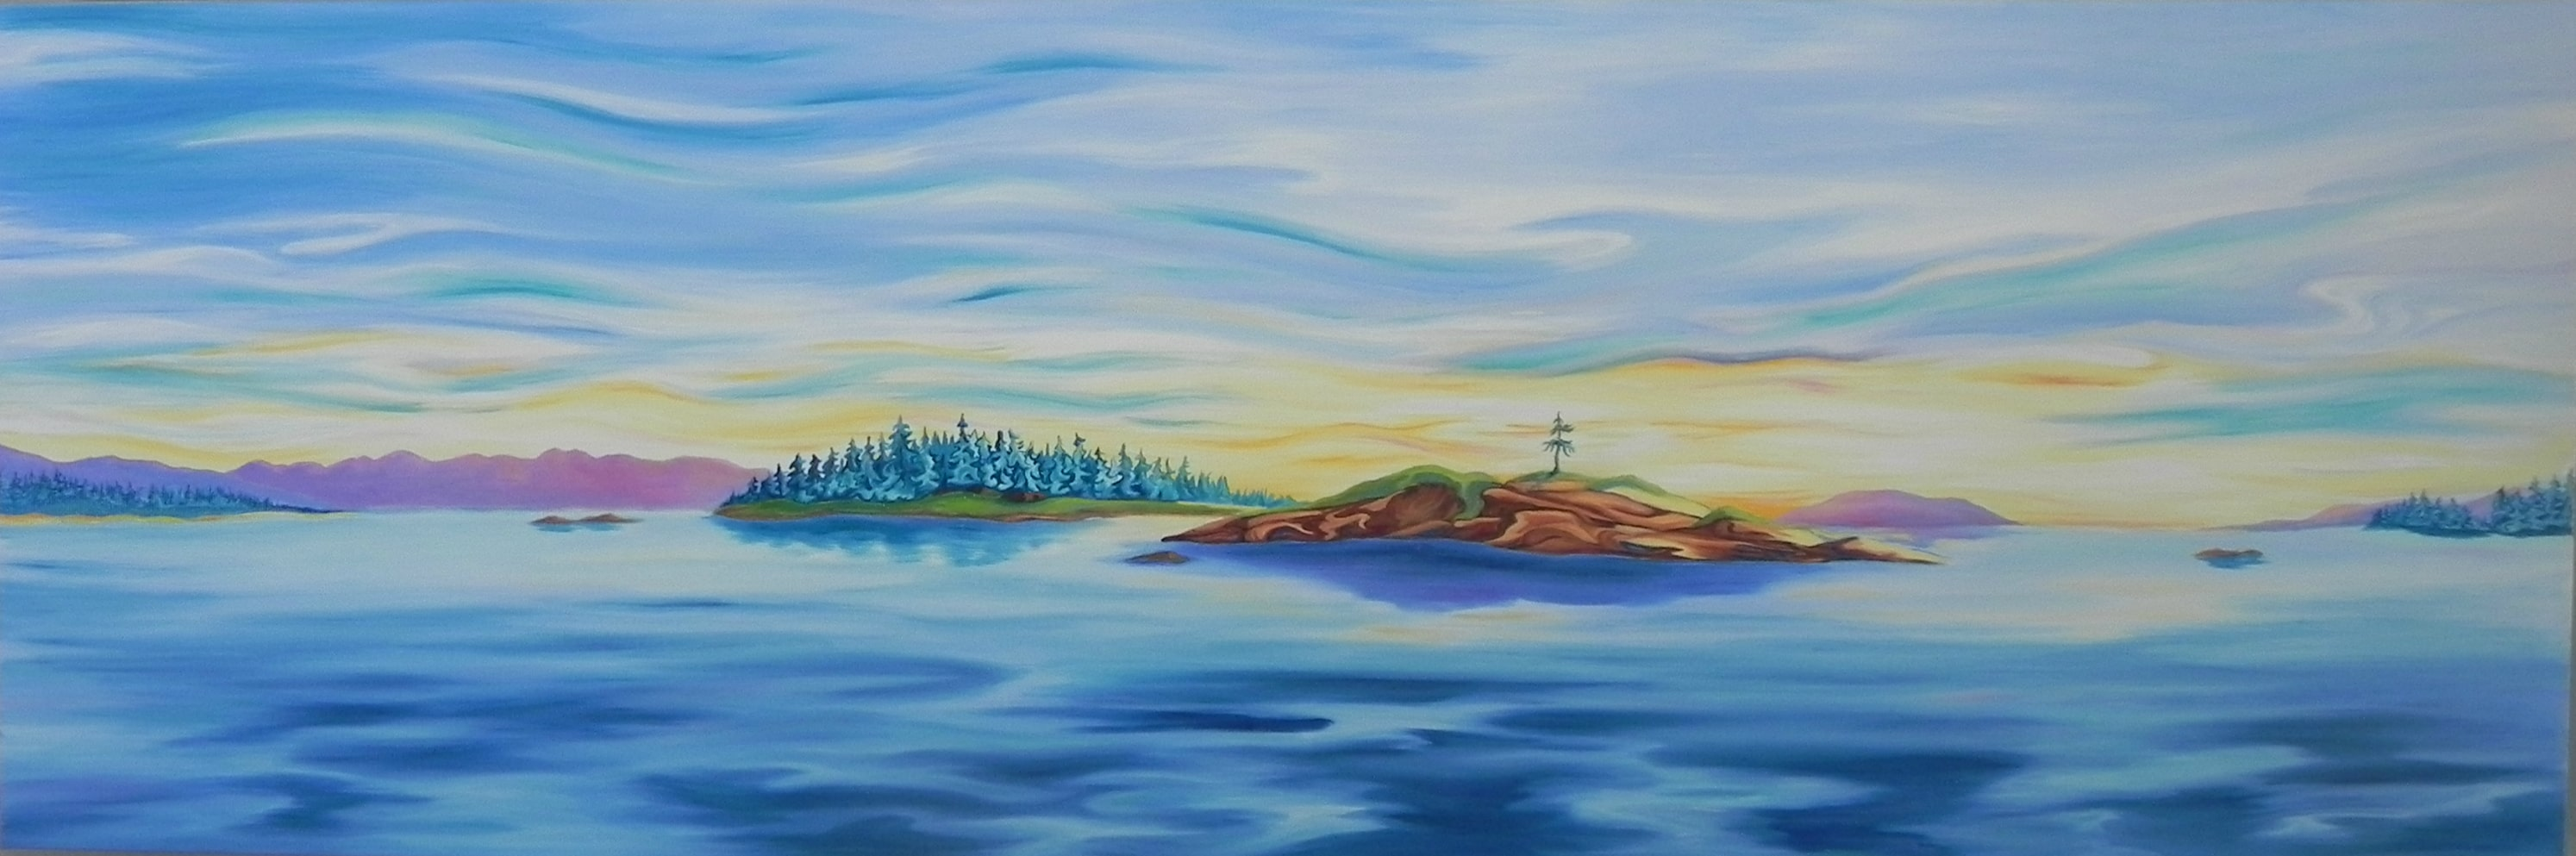 Nanoose Bay painting canvas print available at https://thecreationguild.com/decorator-prints/